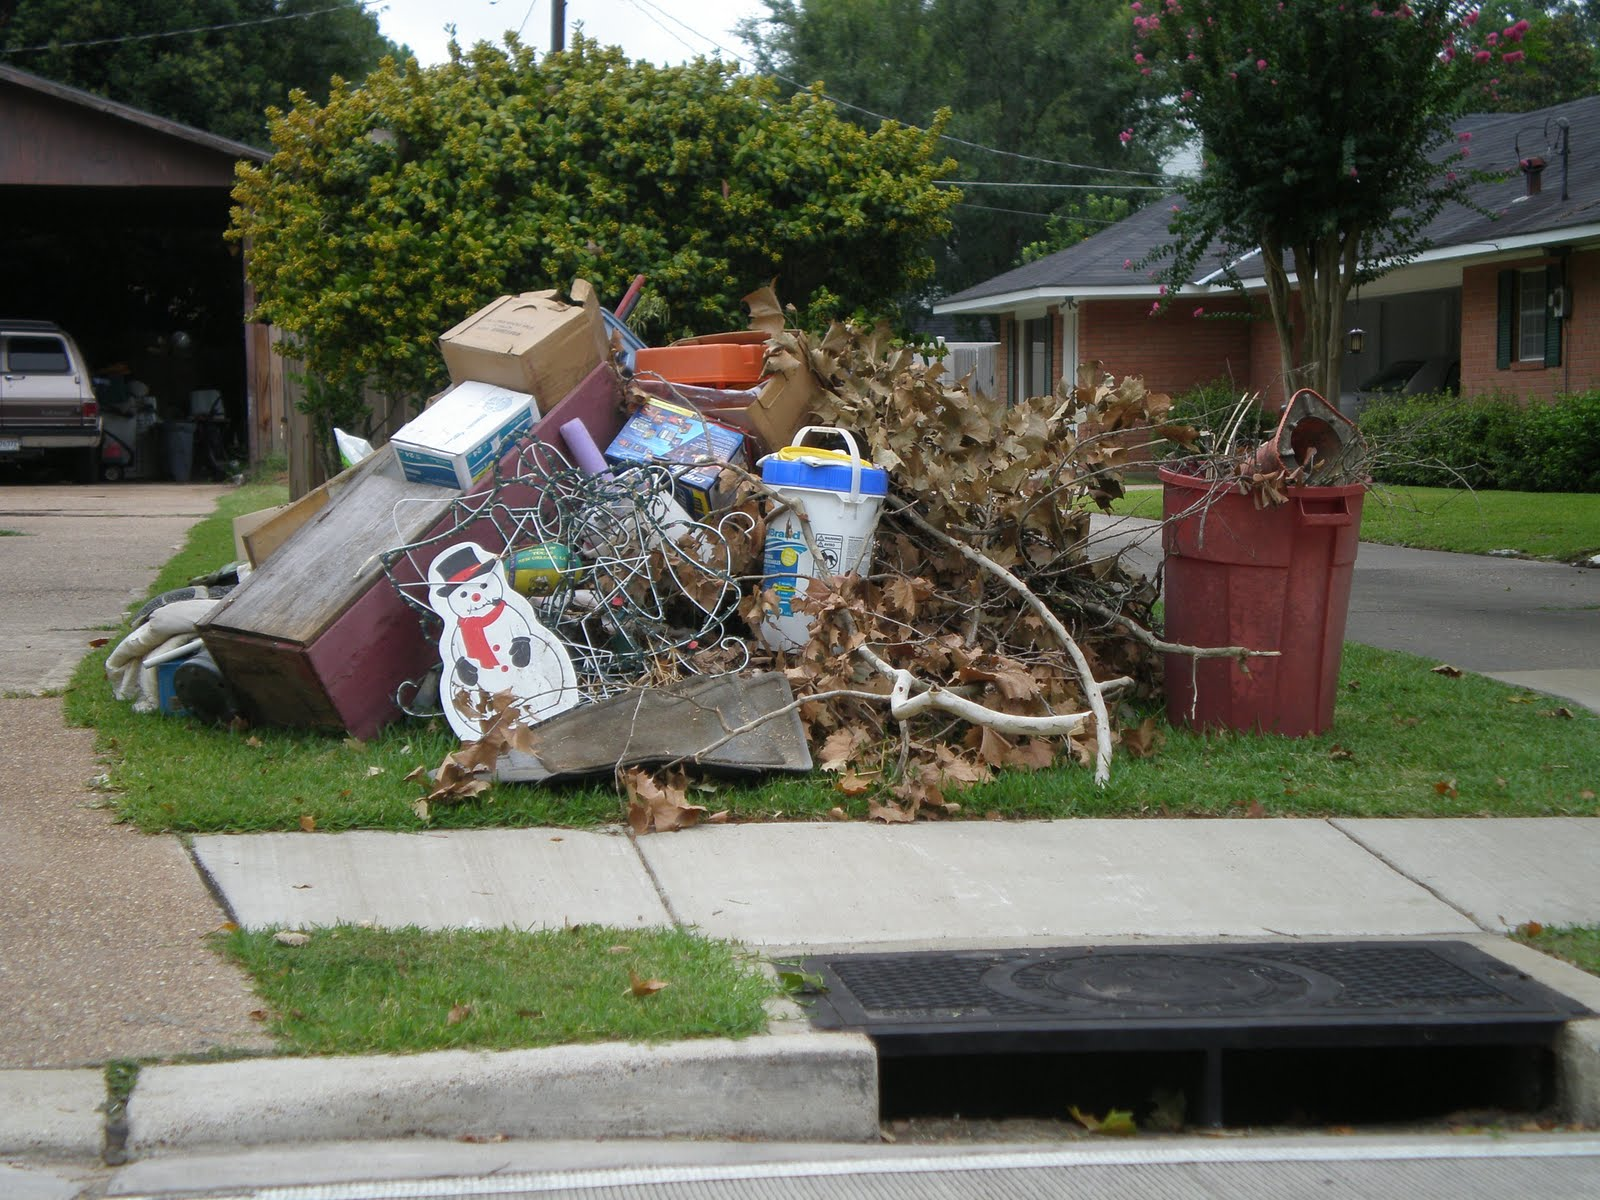 Garbage Pick Up : The suitcase artist what is recycled art